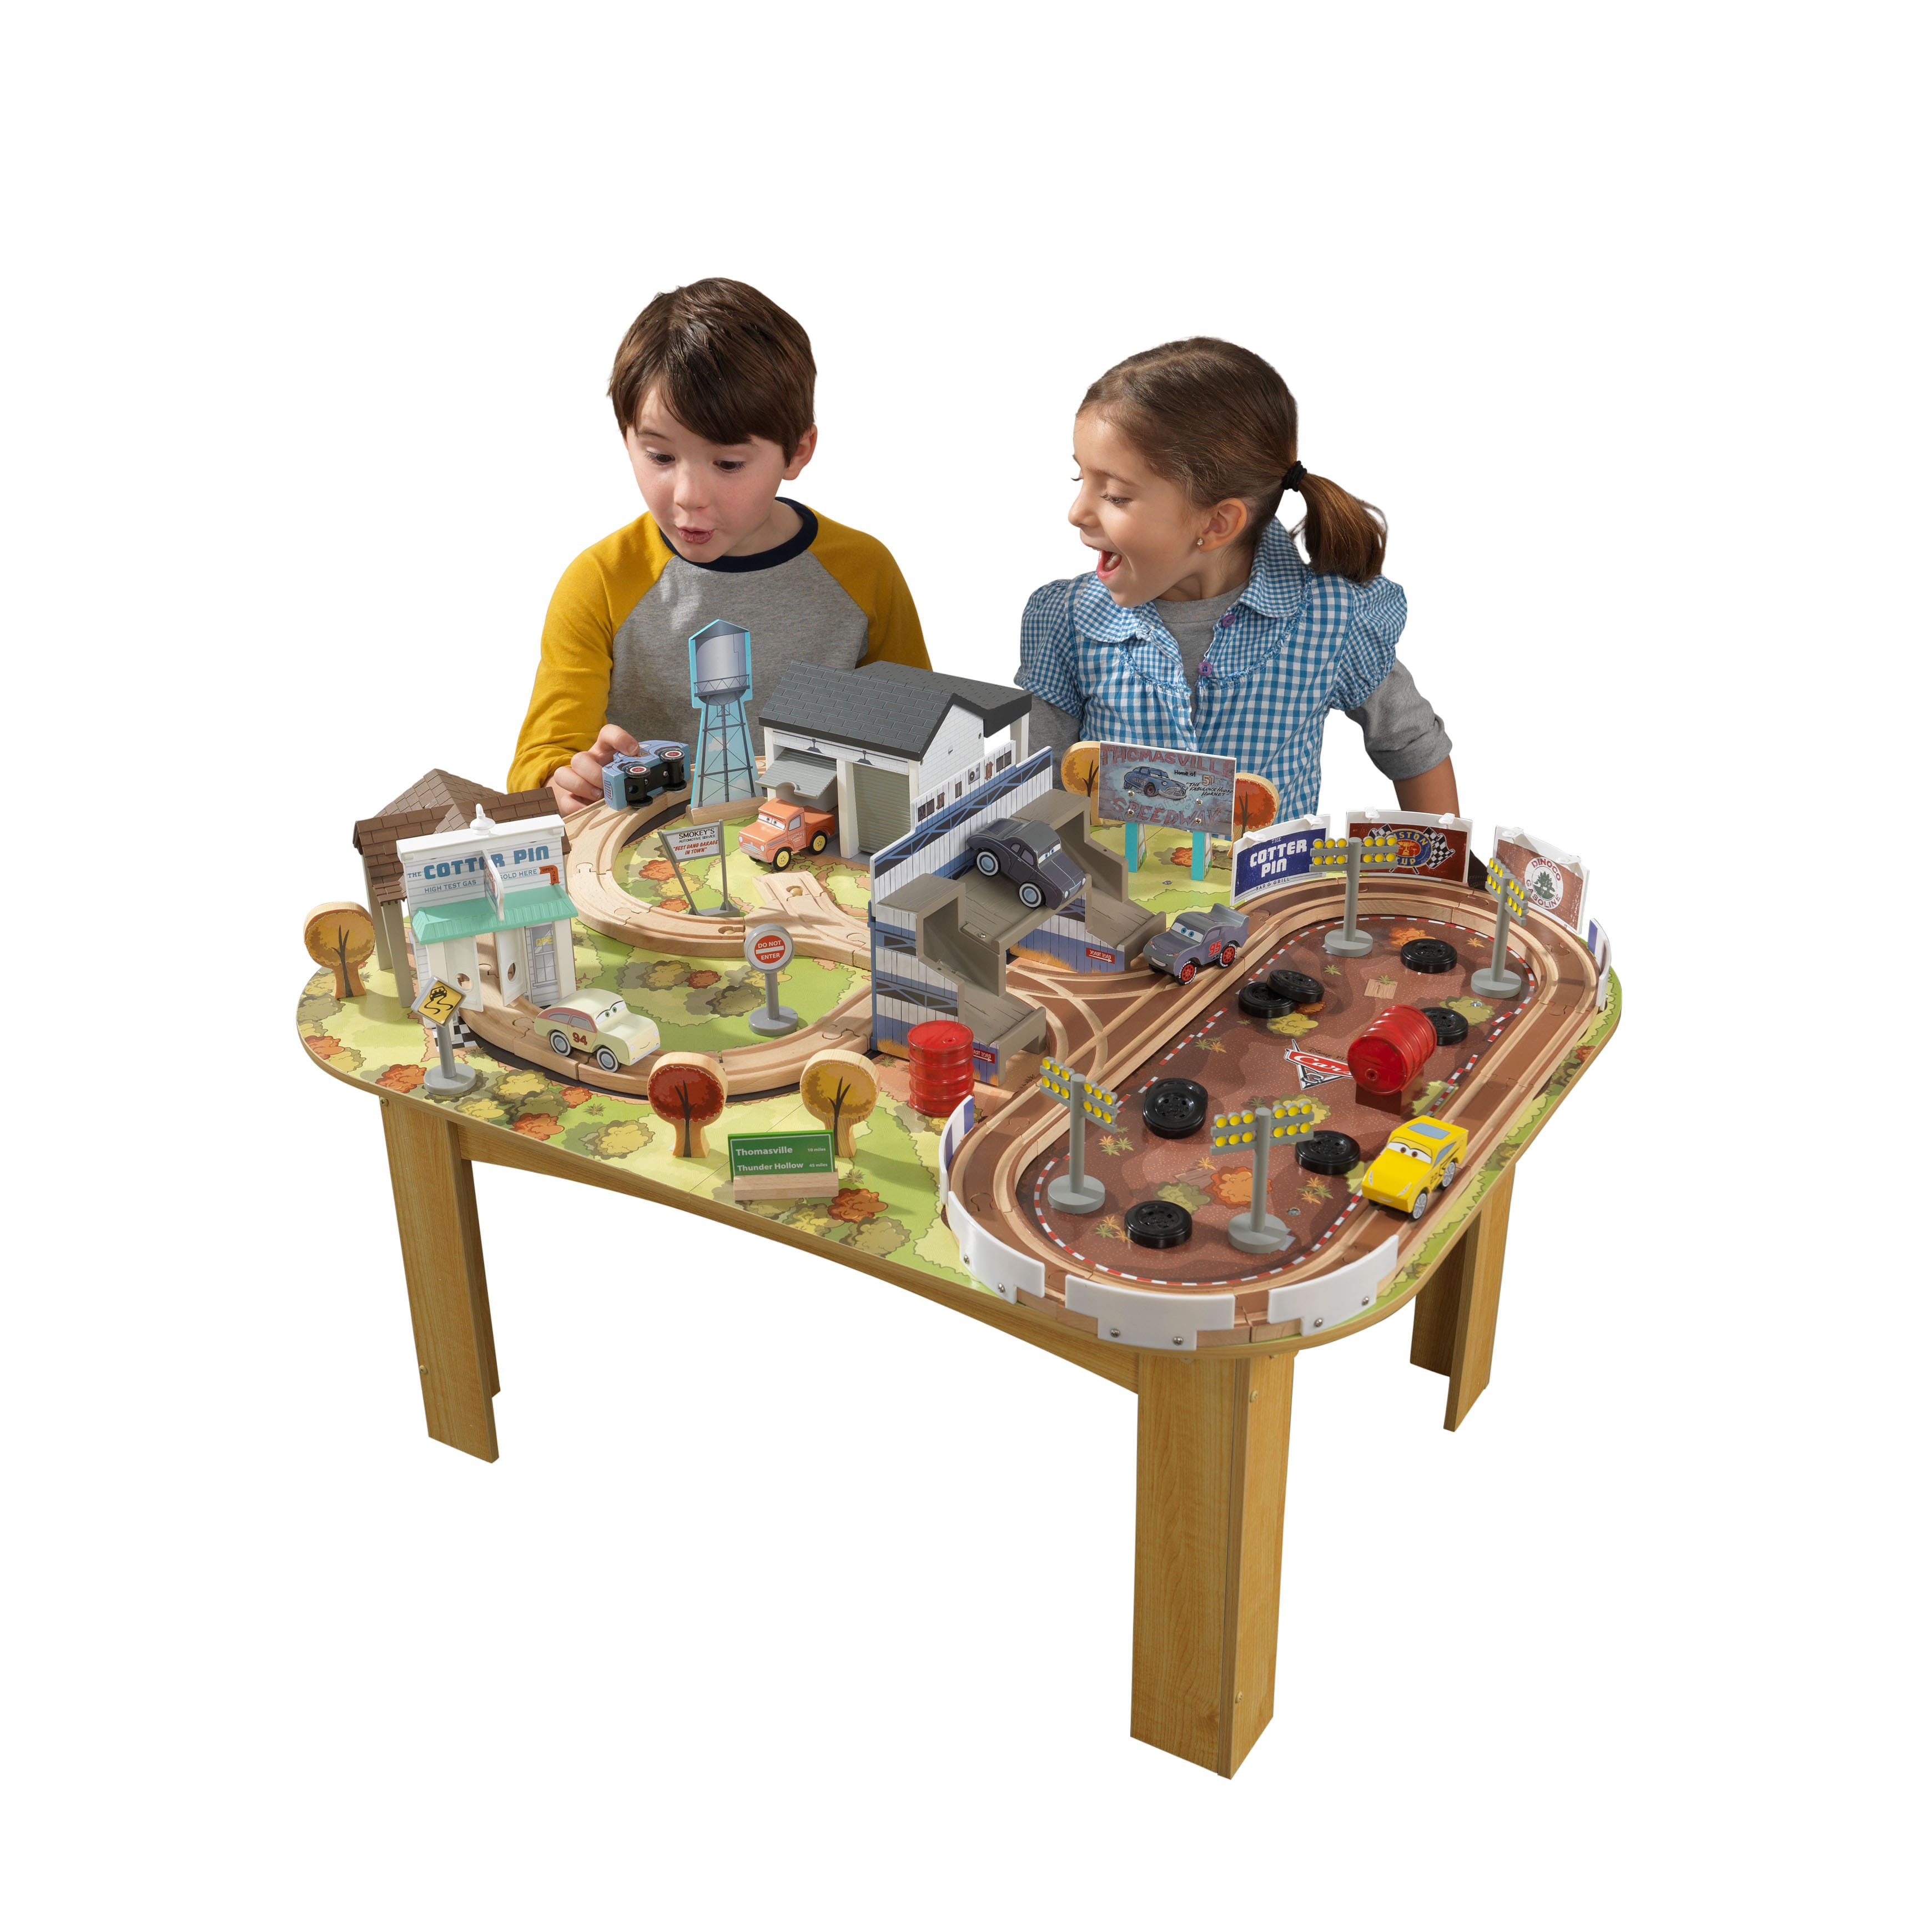 Amazon - KIDKRAFT Disney Pixar Cars 3 Thomasville 70 Piece Wooden Track Set with Accessories and Table - $49.98!